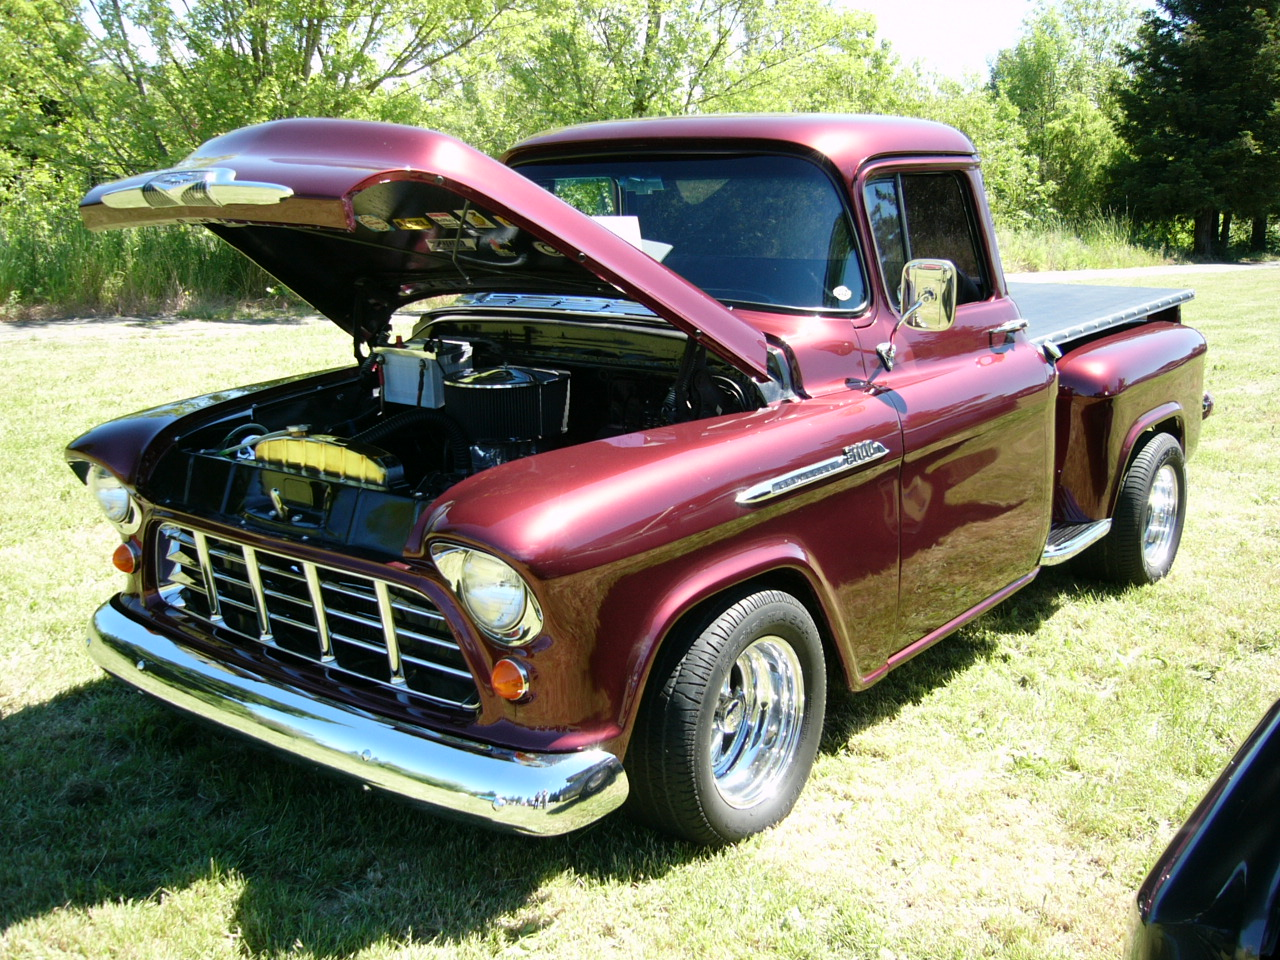 1956 Chevrolet 3100 truck by